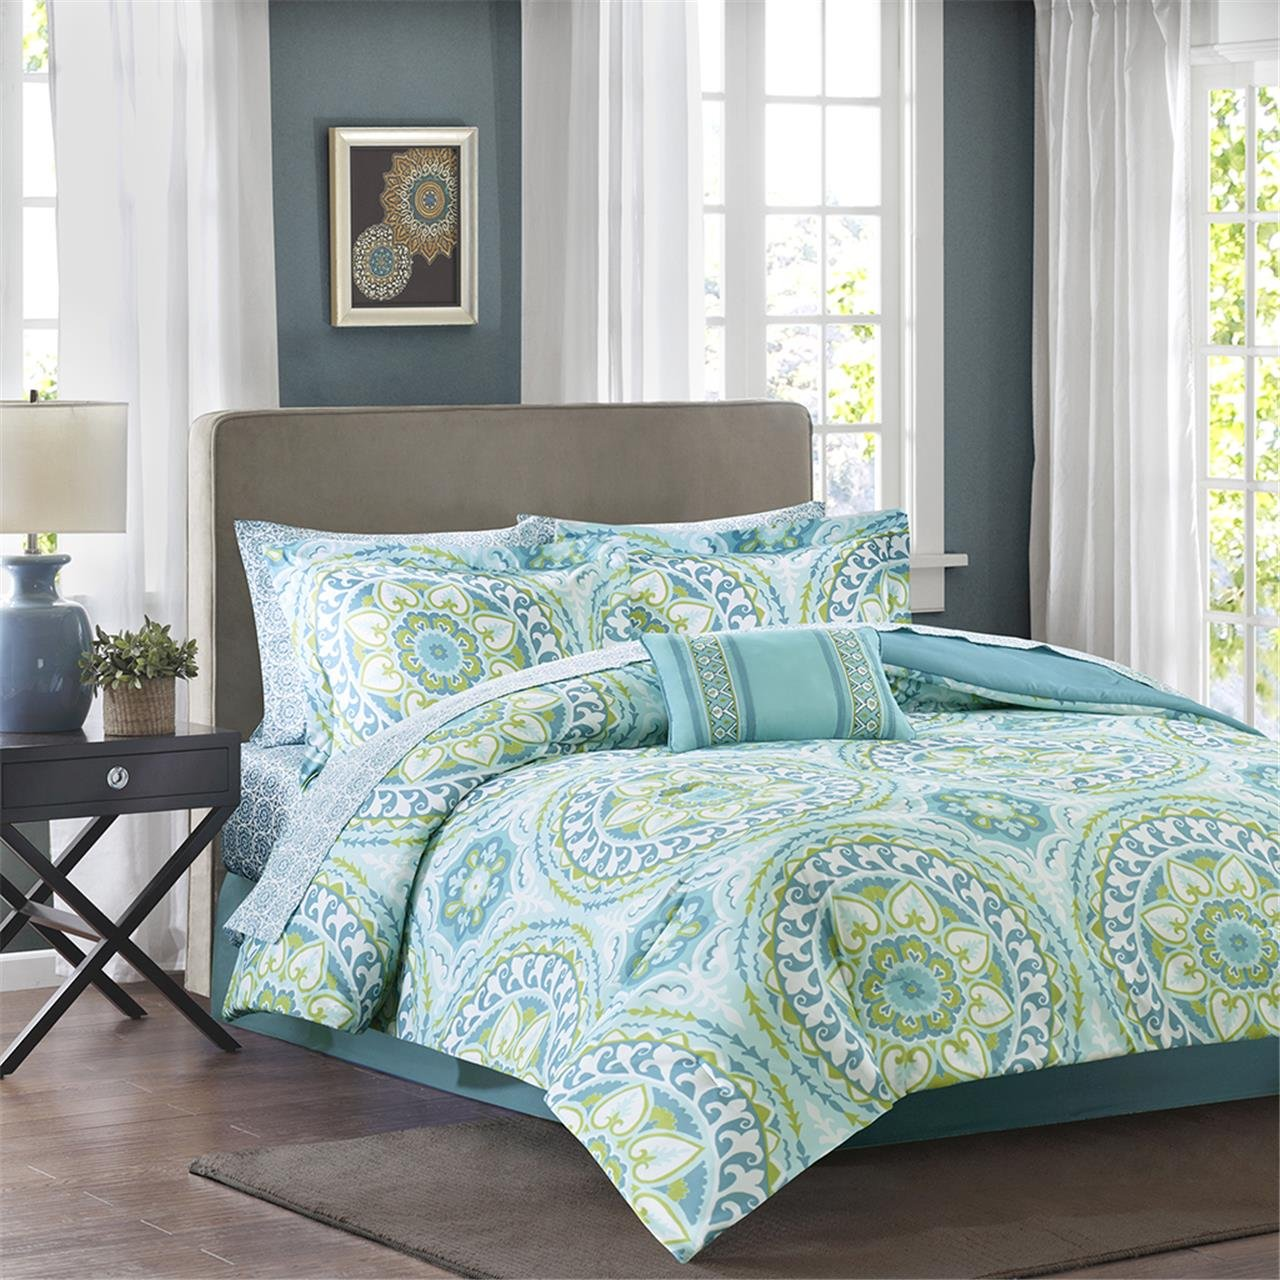 Madison Park Essentials Serenity Complete Bed & Sheet Set King Aqua,King